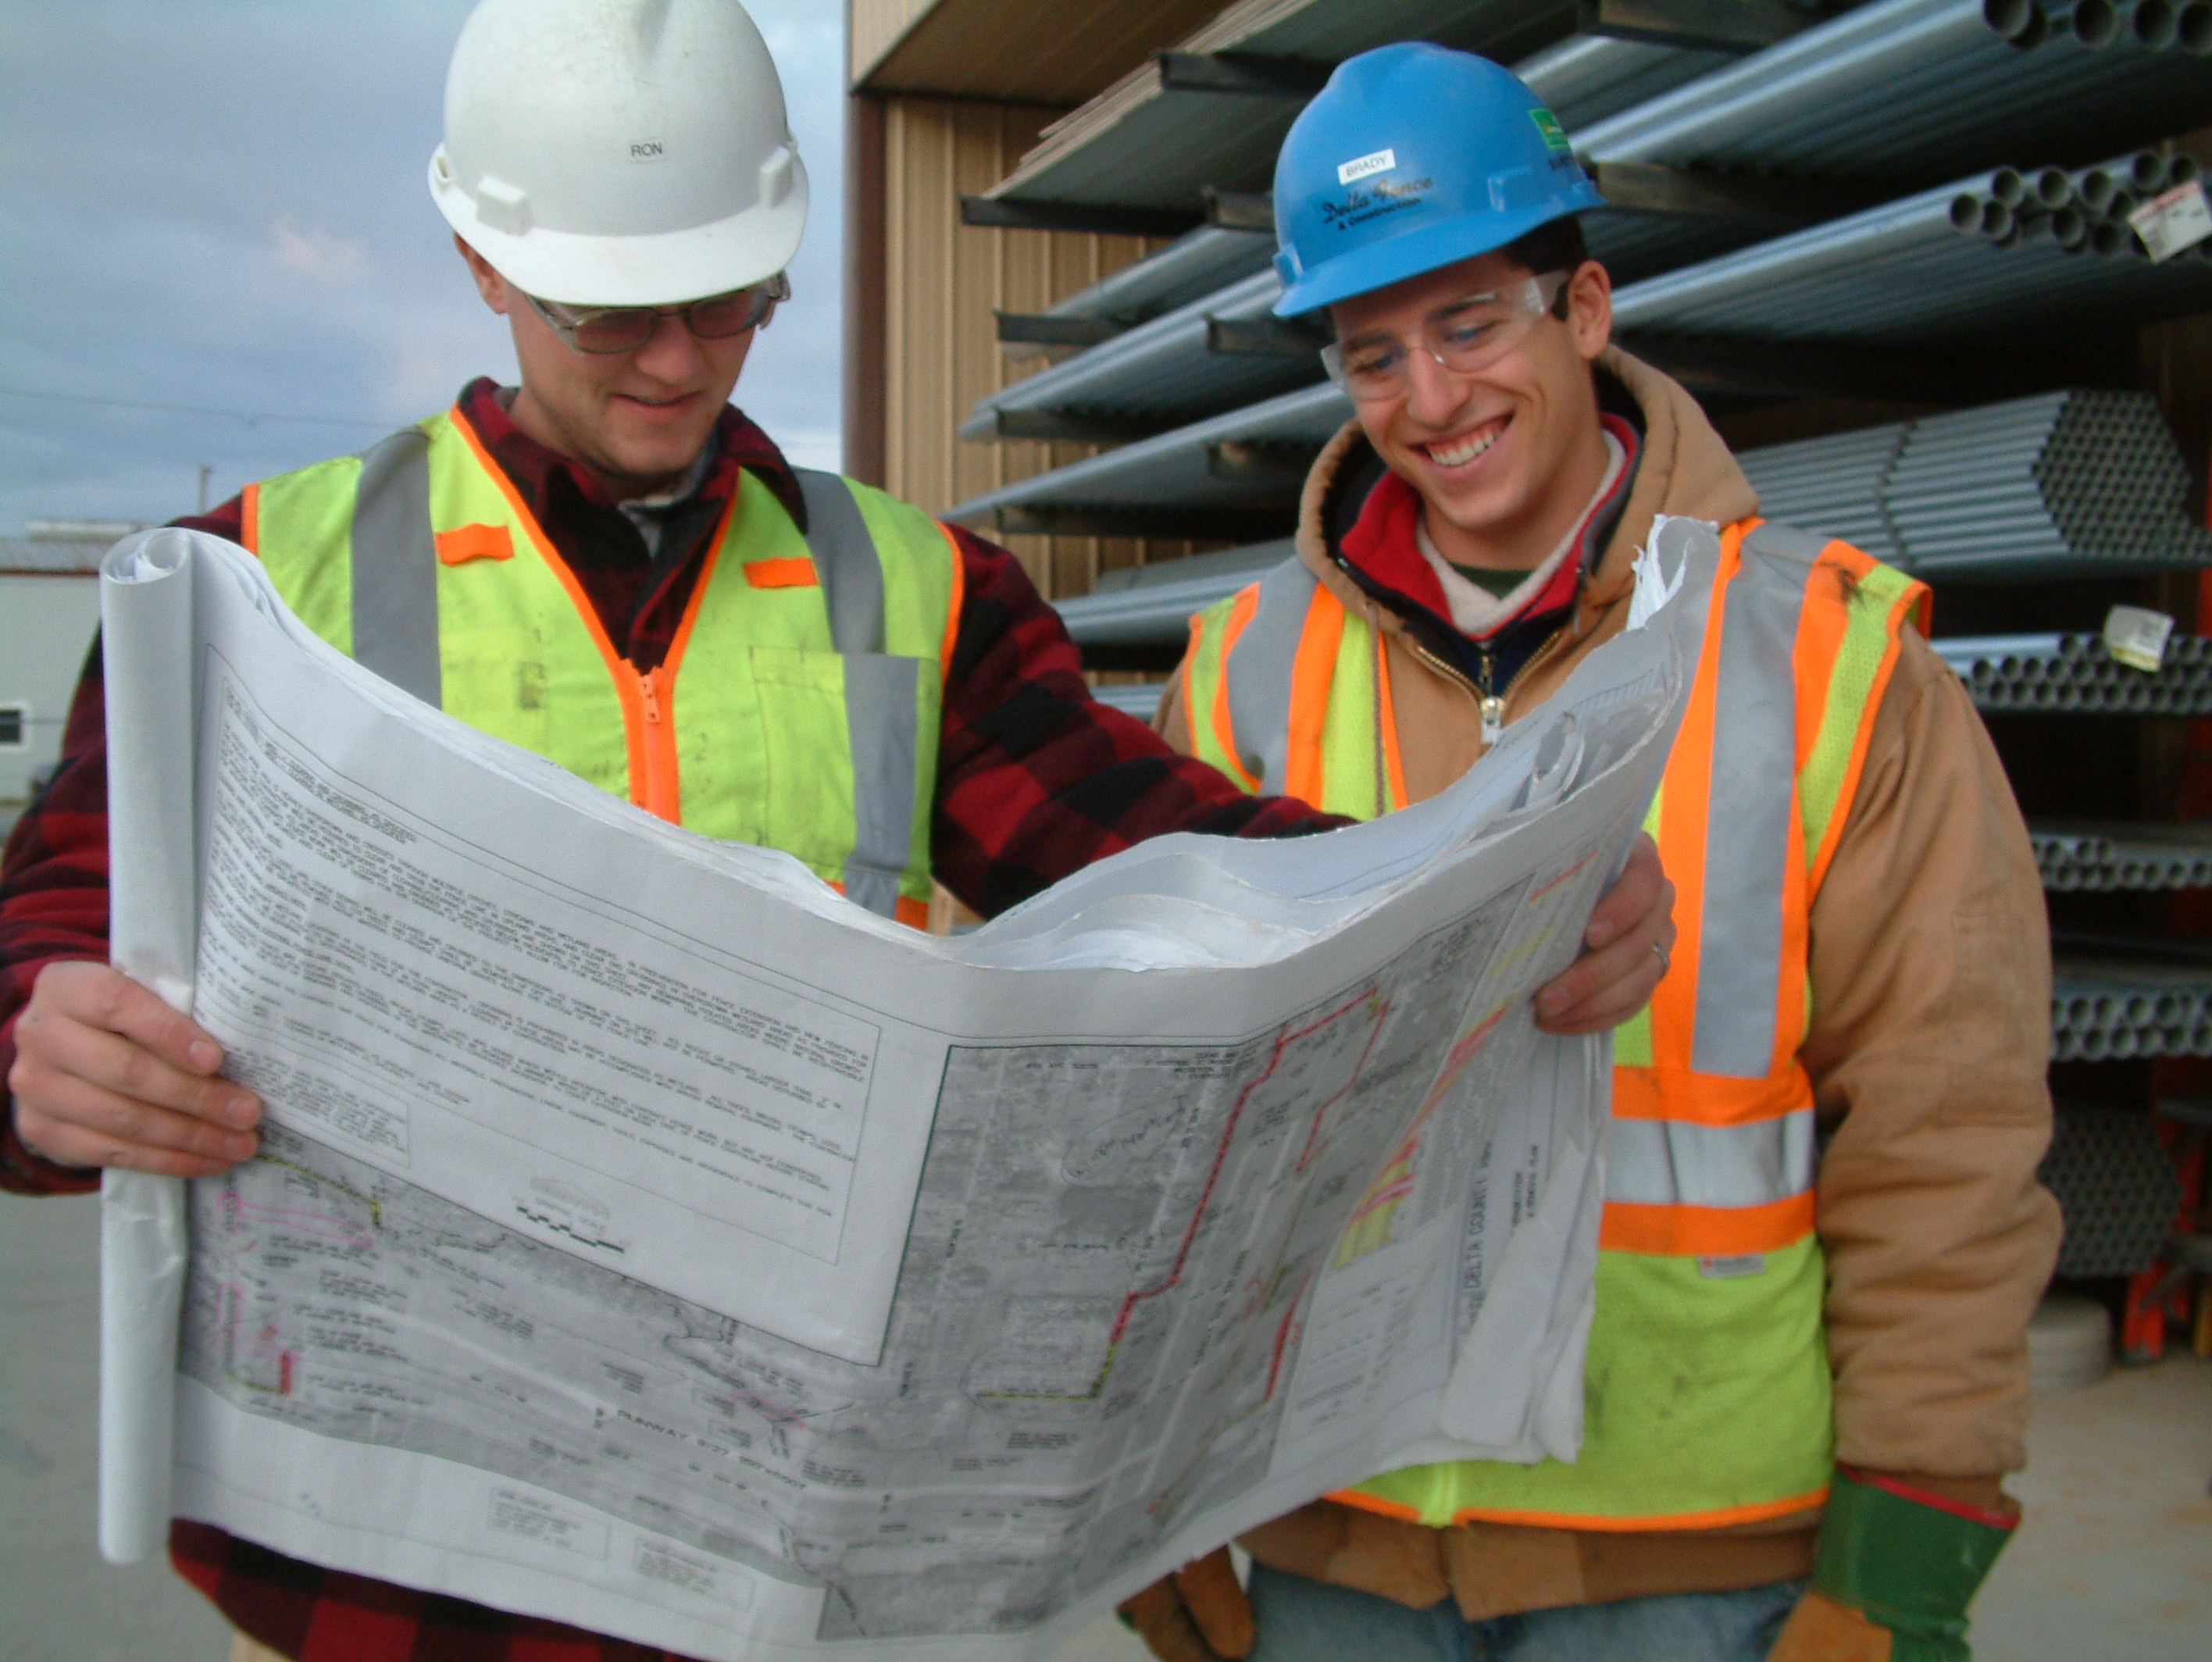 Man on Construction Studying Blueprint